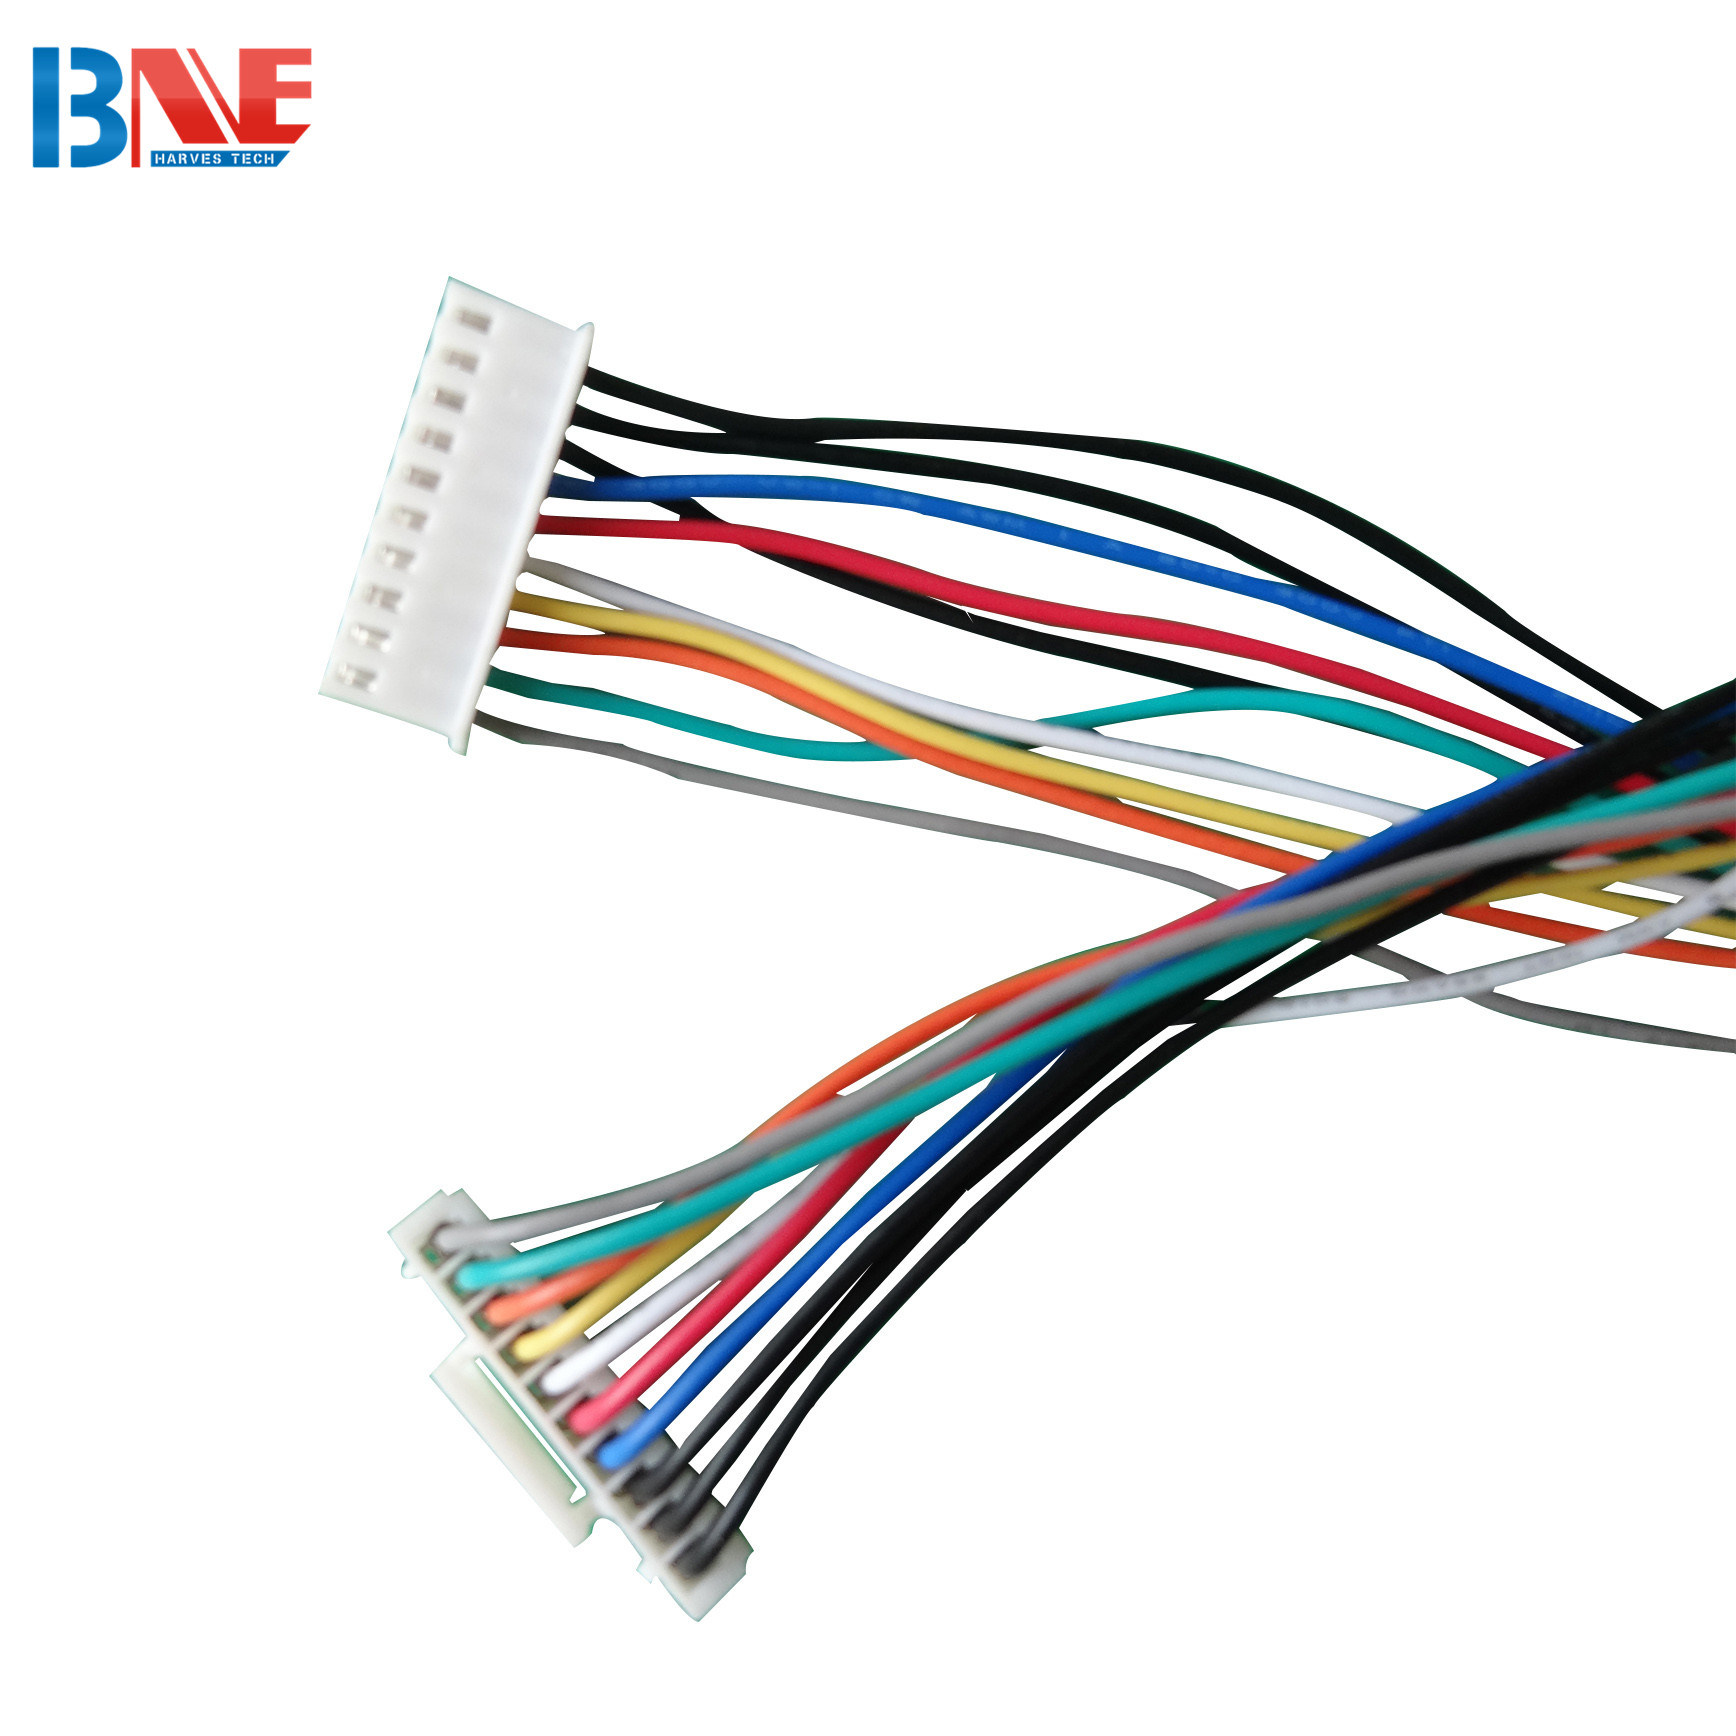 China Custom Electrical Cable Assembly Equipment Wire Harness ...